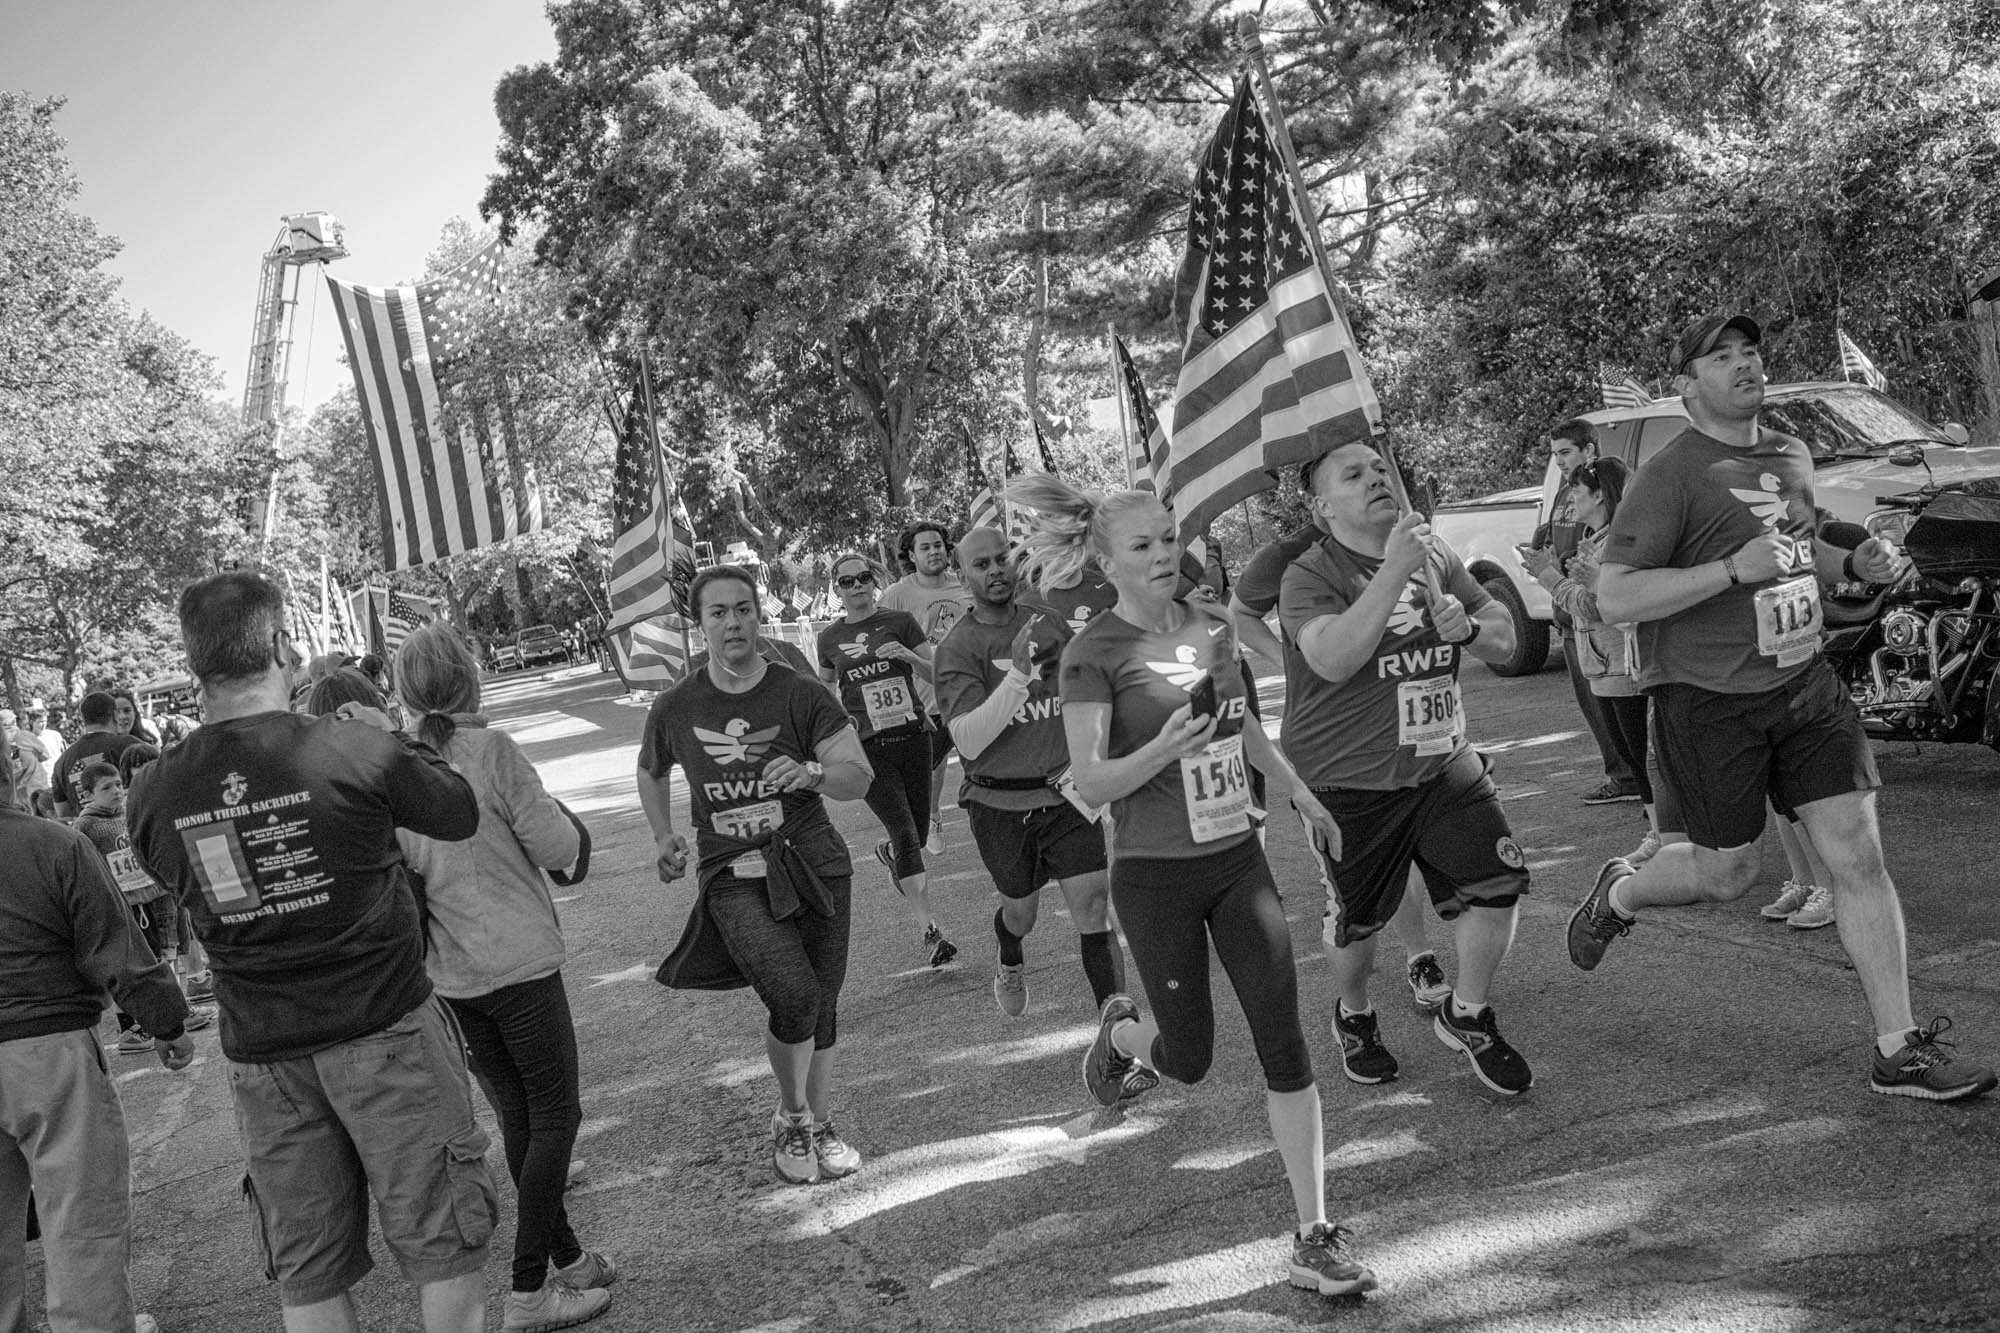 A veterans group running to honor the fallen